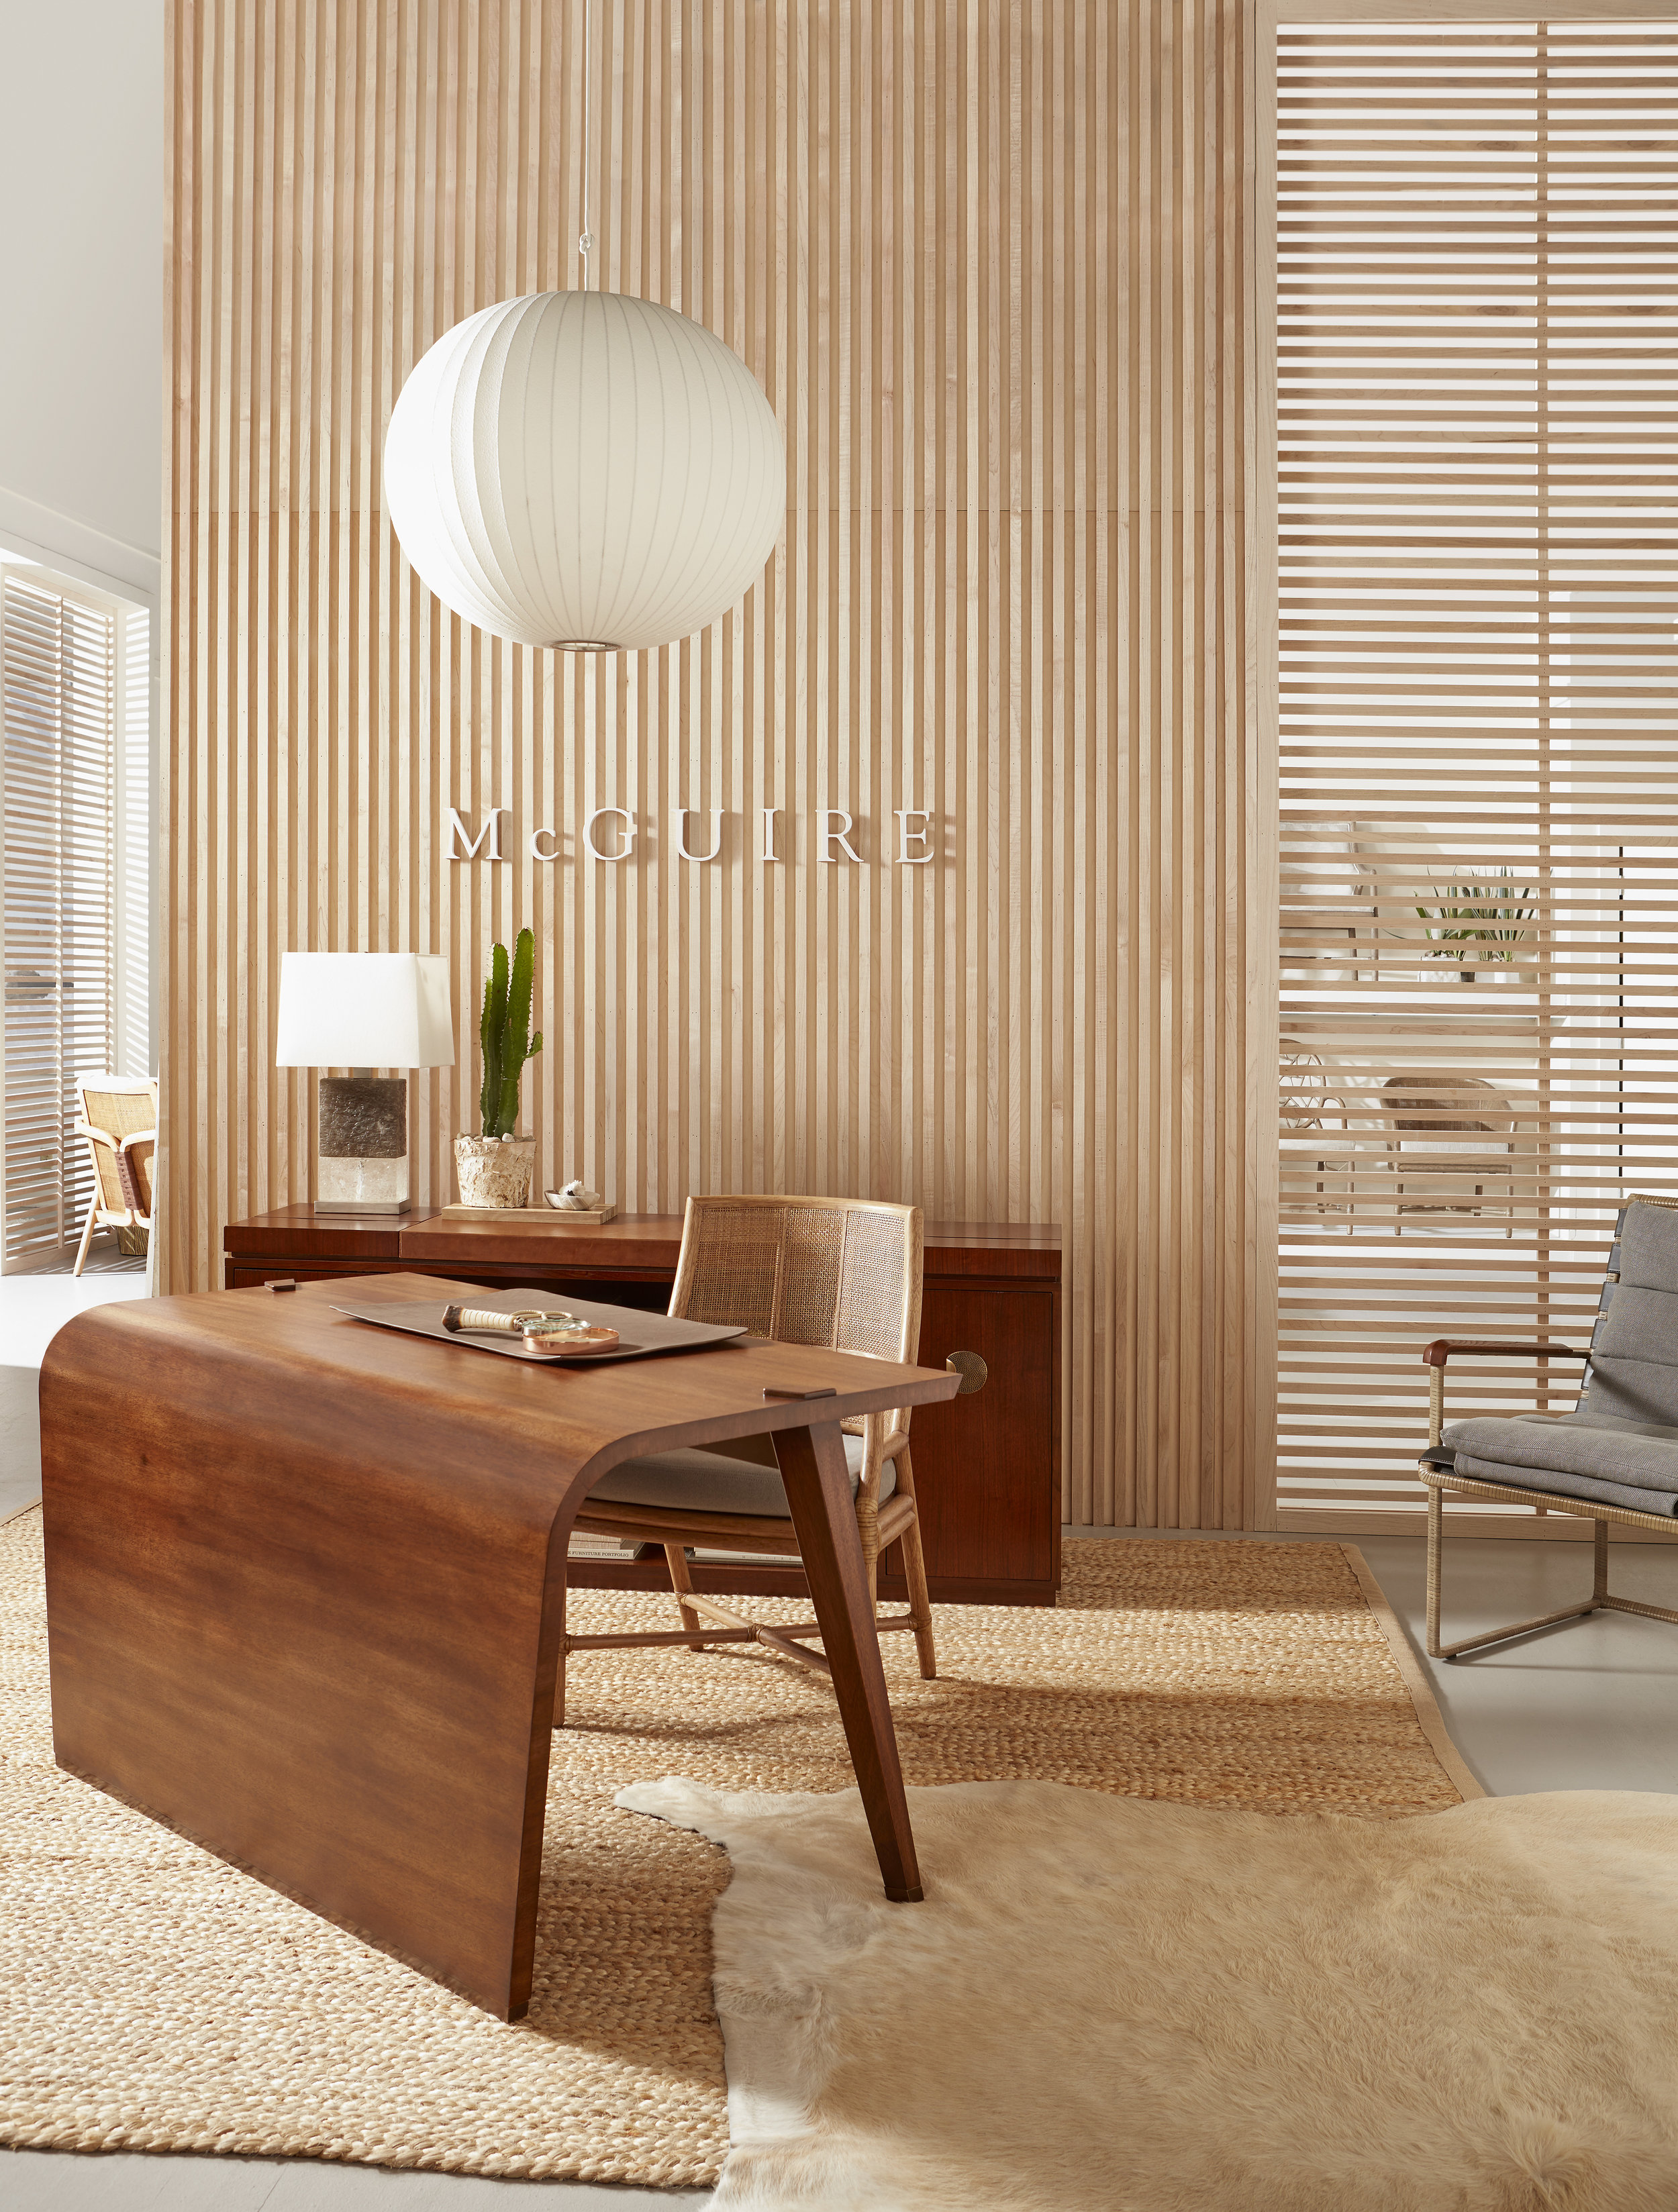 FURNITURE VIGNETTE AND SET DESIGN/ BUILD | PHOTOGRAPHY BY DIANA PARRISH